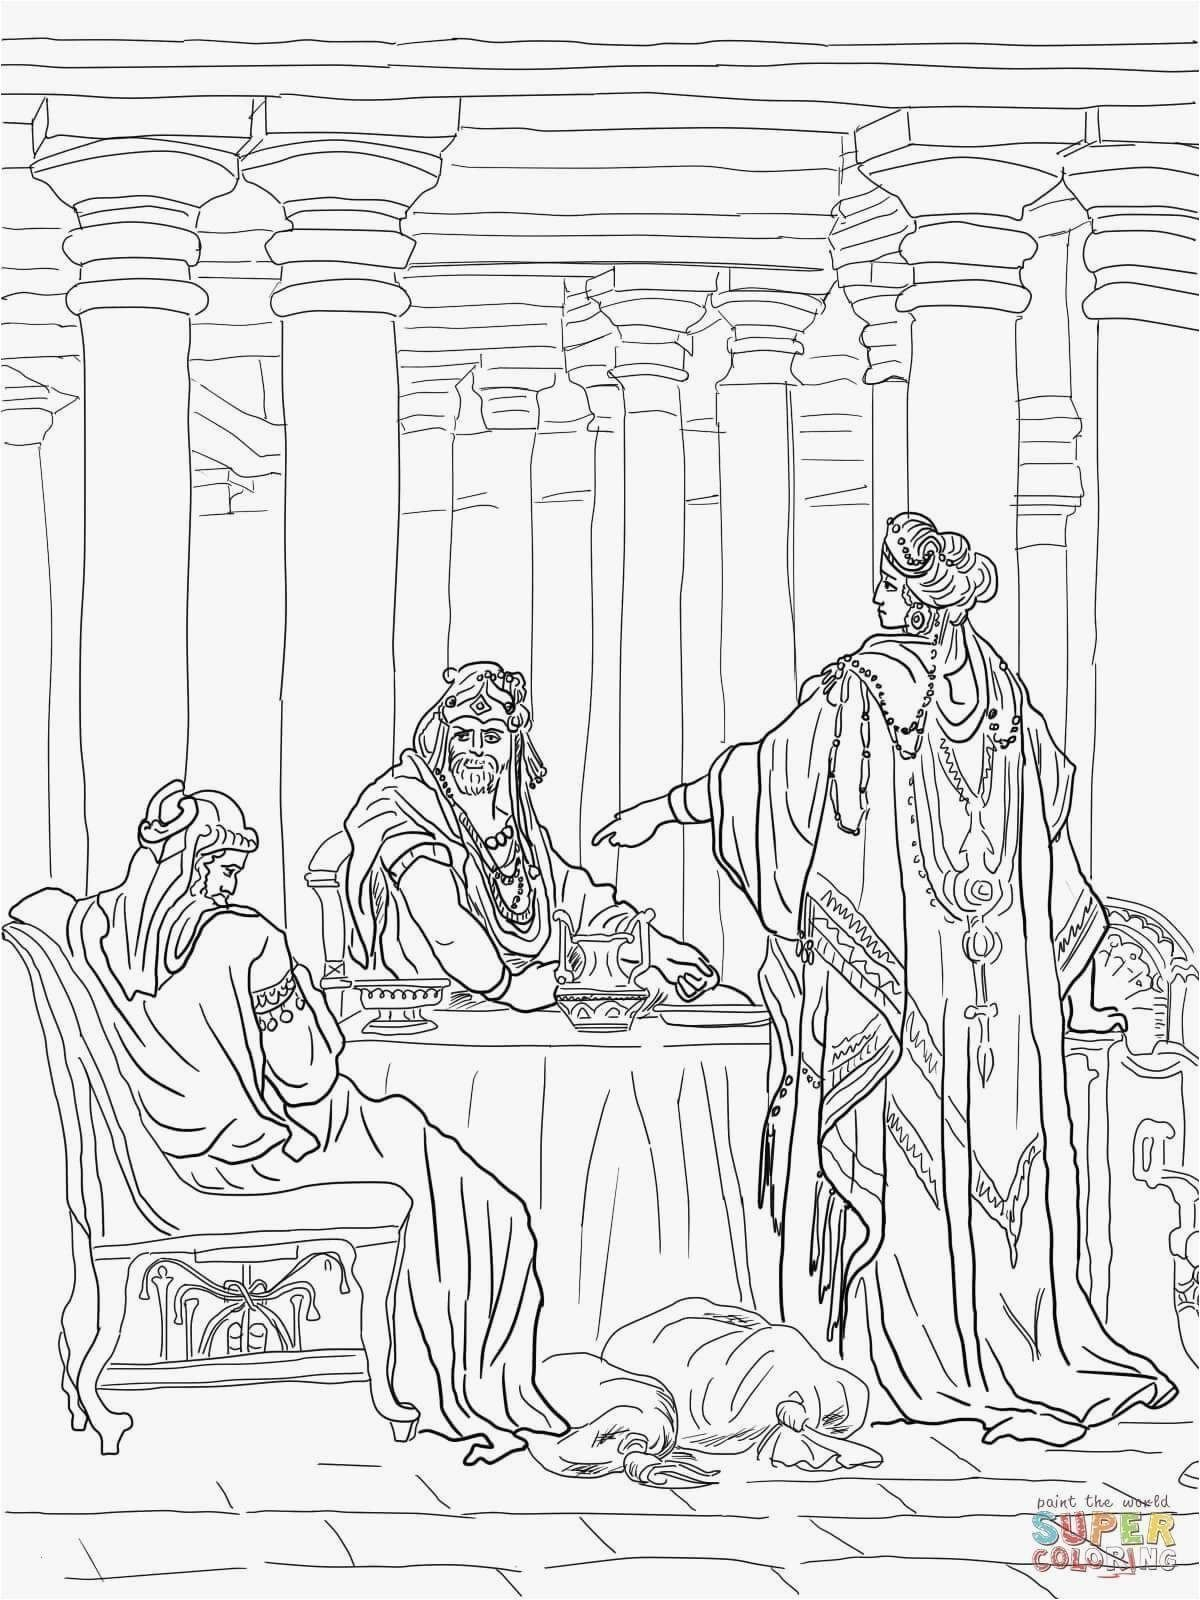 Queen Esther Coloring Pages Inspirational Coloring Pages ...